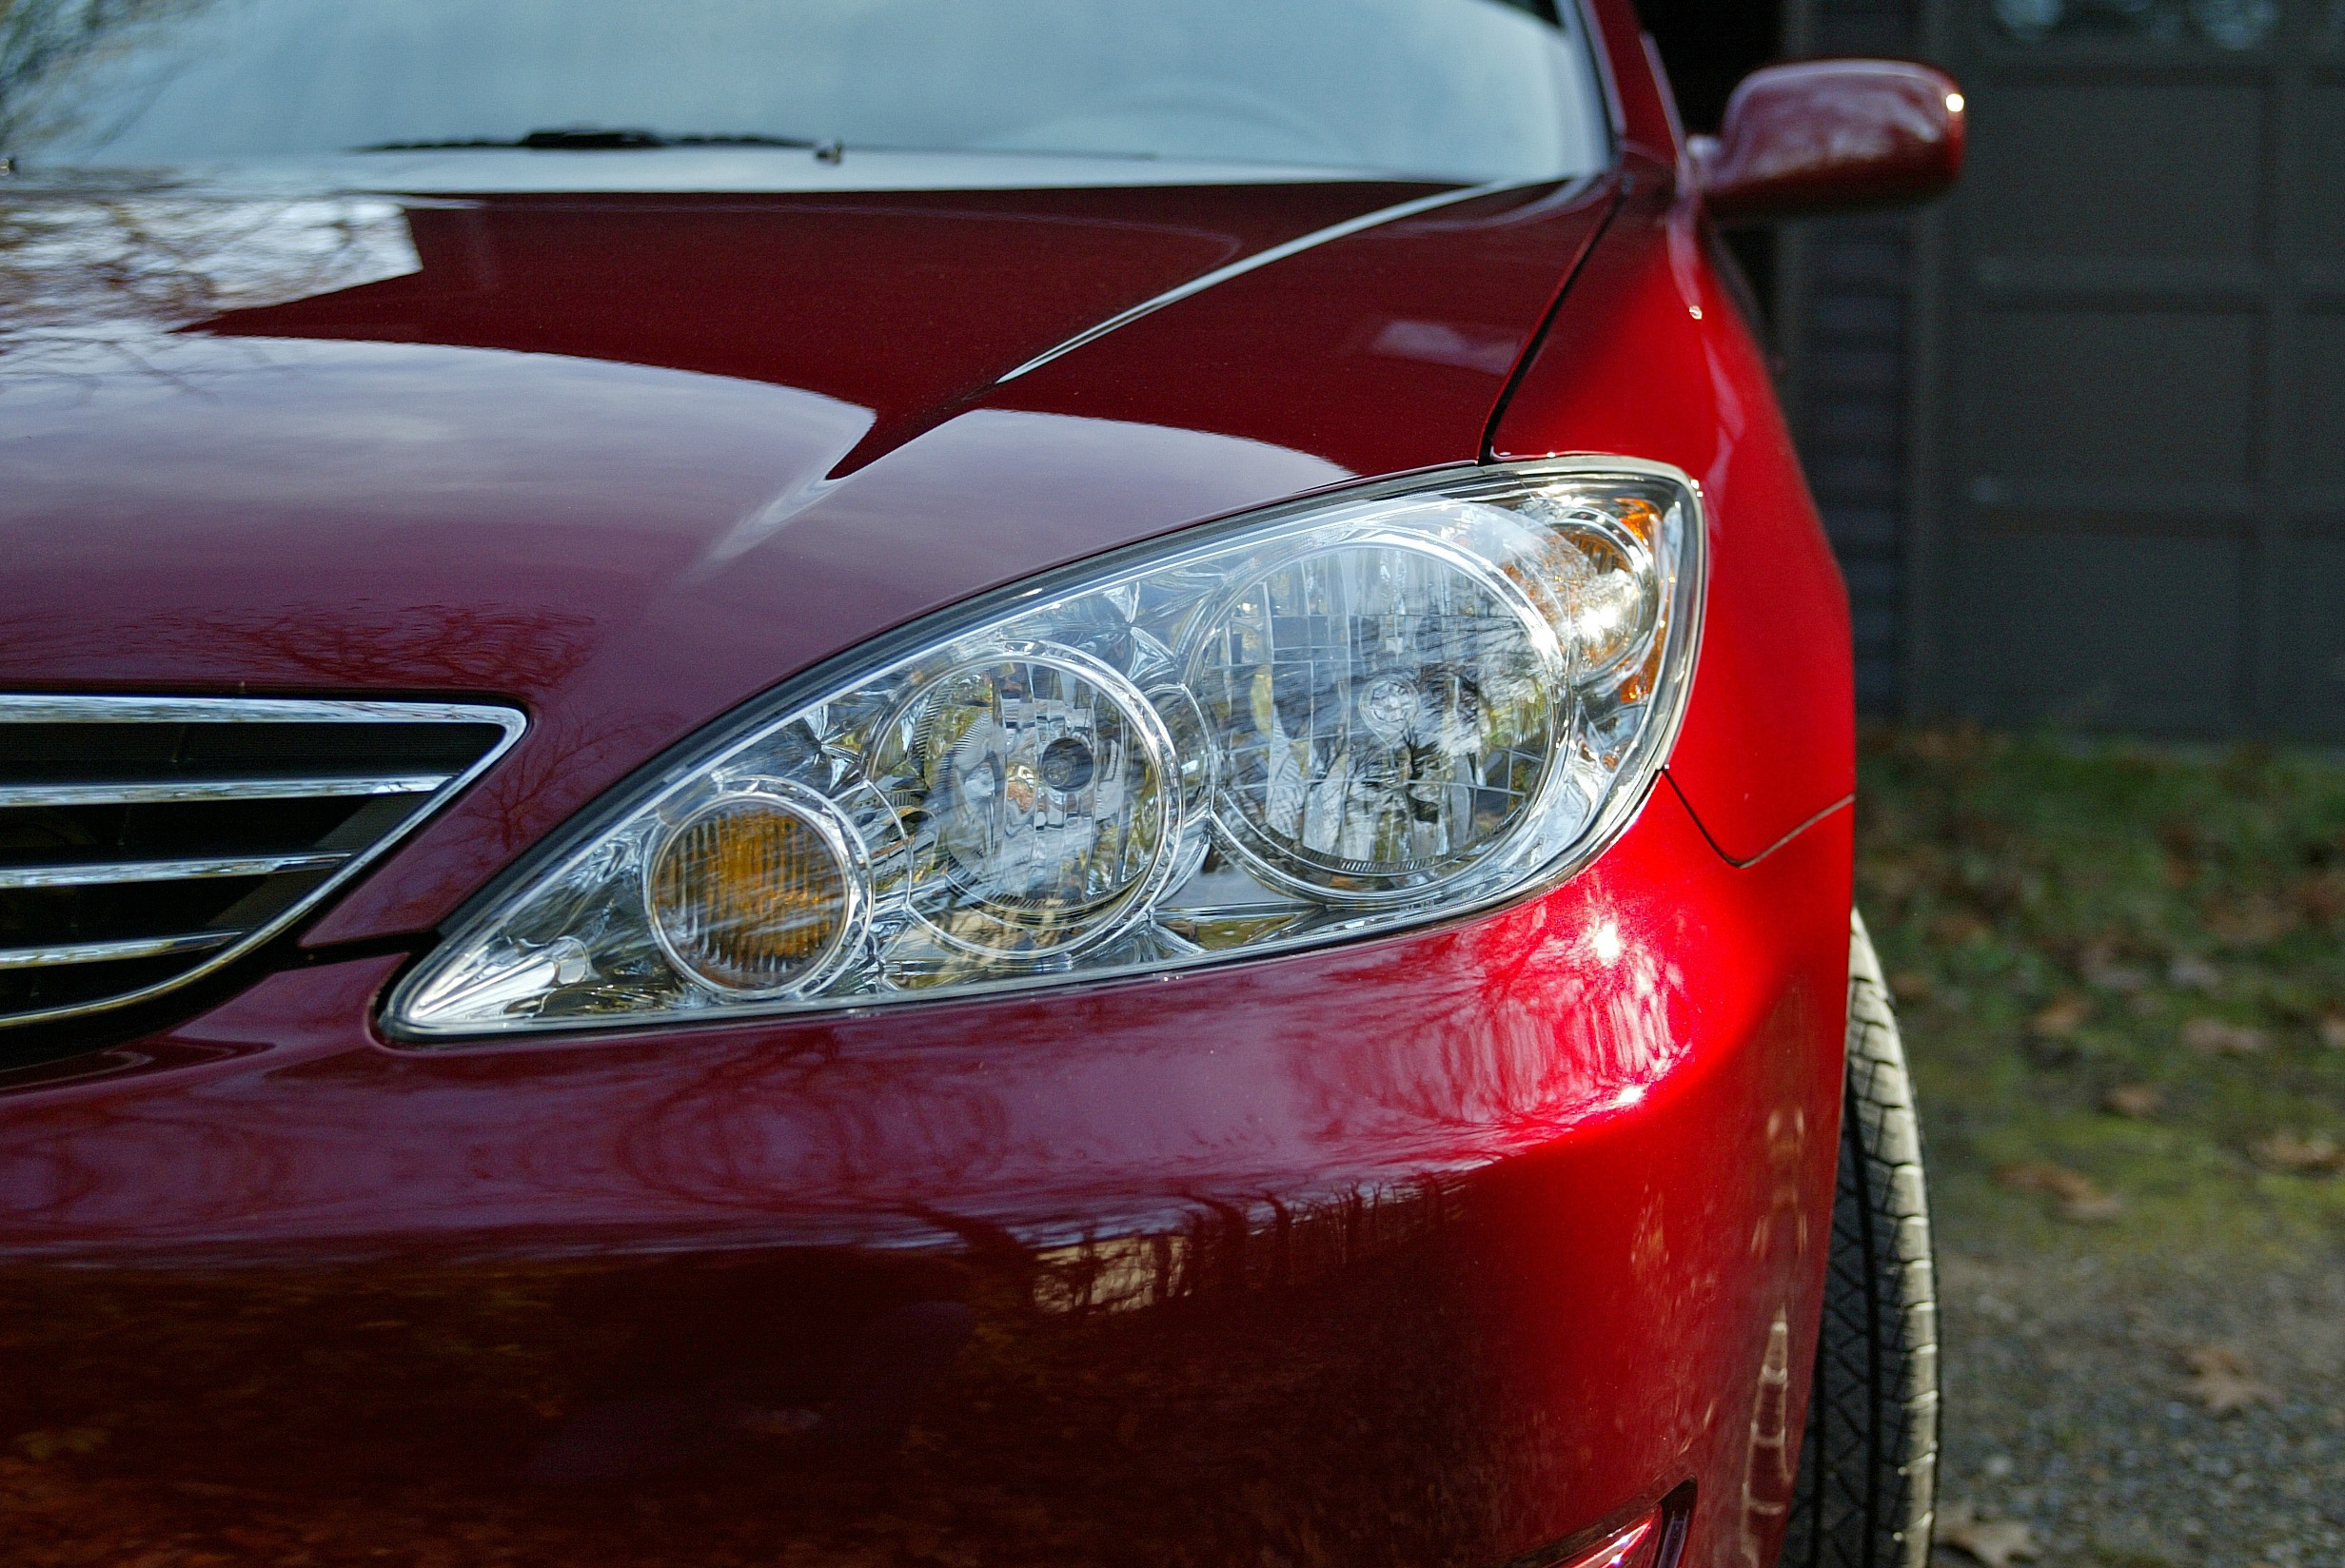 Keep_your_cars_eyesight_good_with_personal_auto_insurance_from_Andrew_G_Gordon_Inc-1